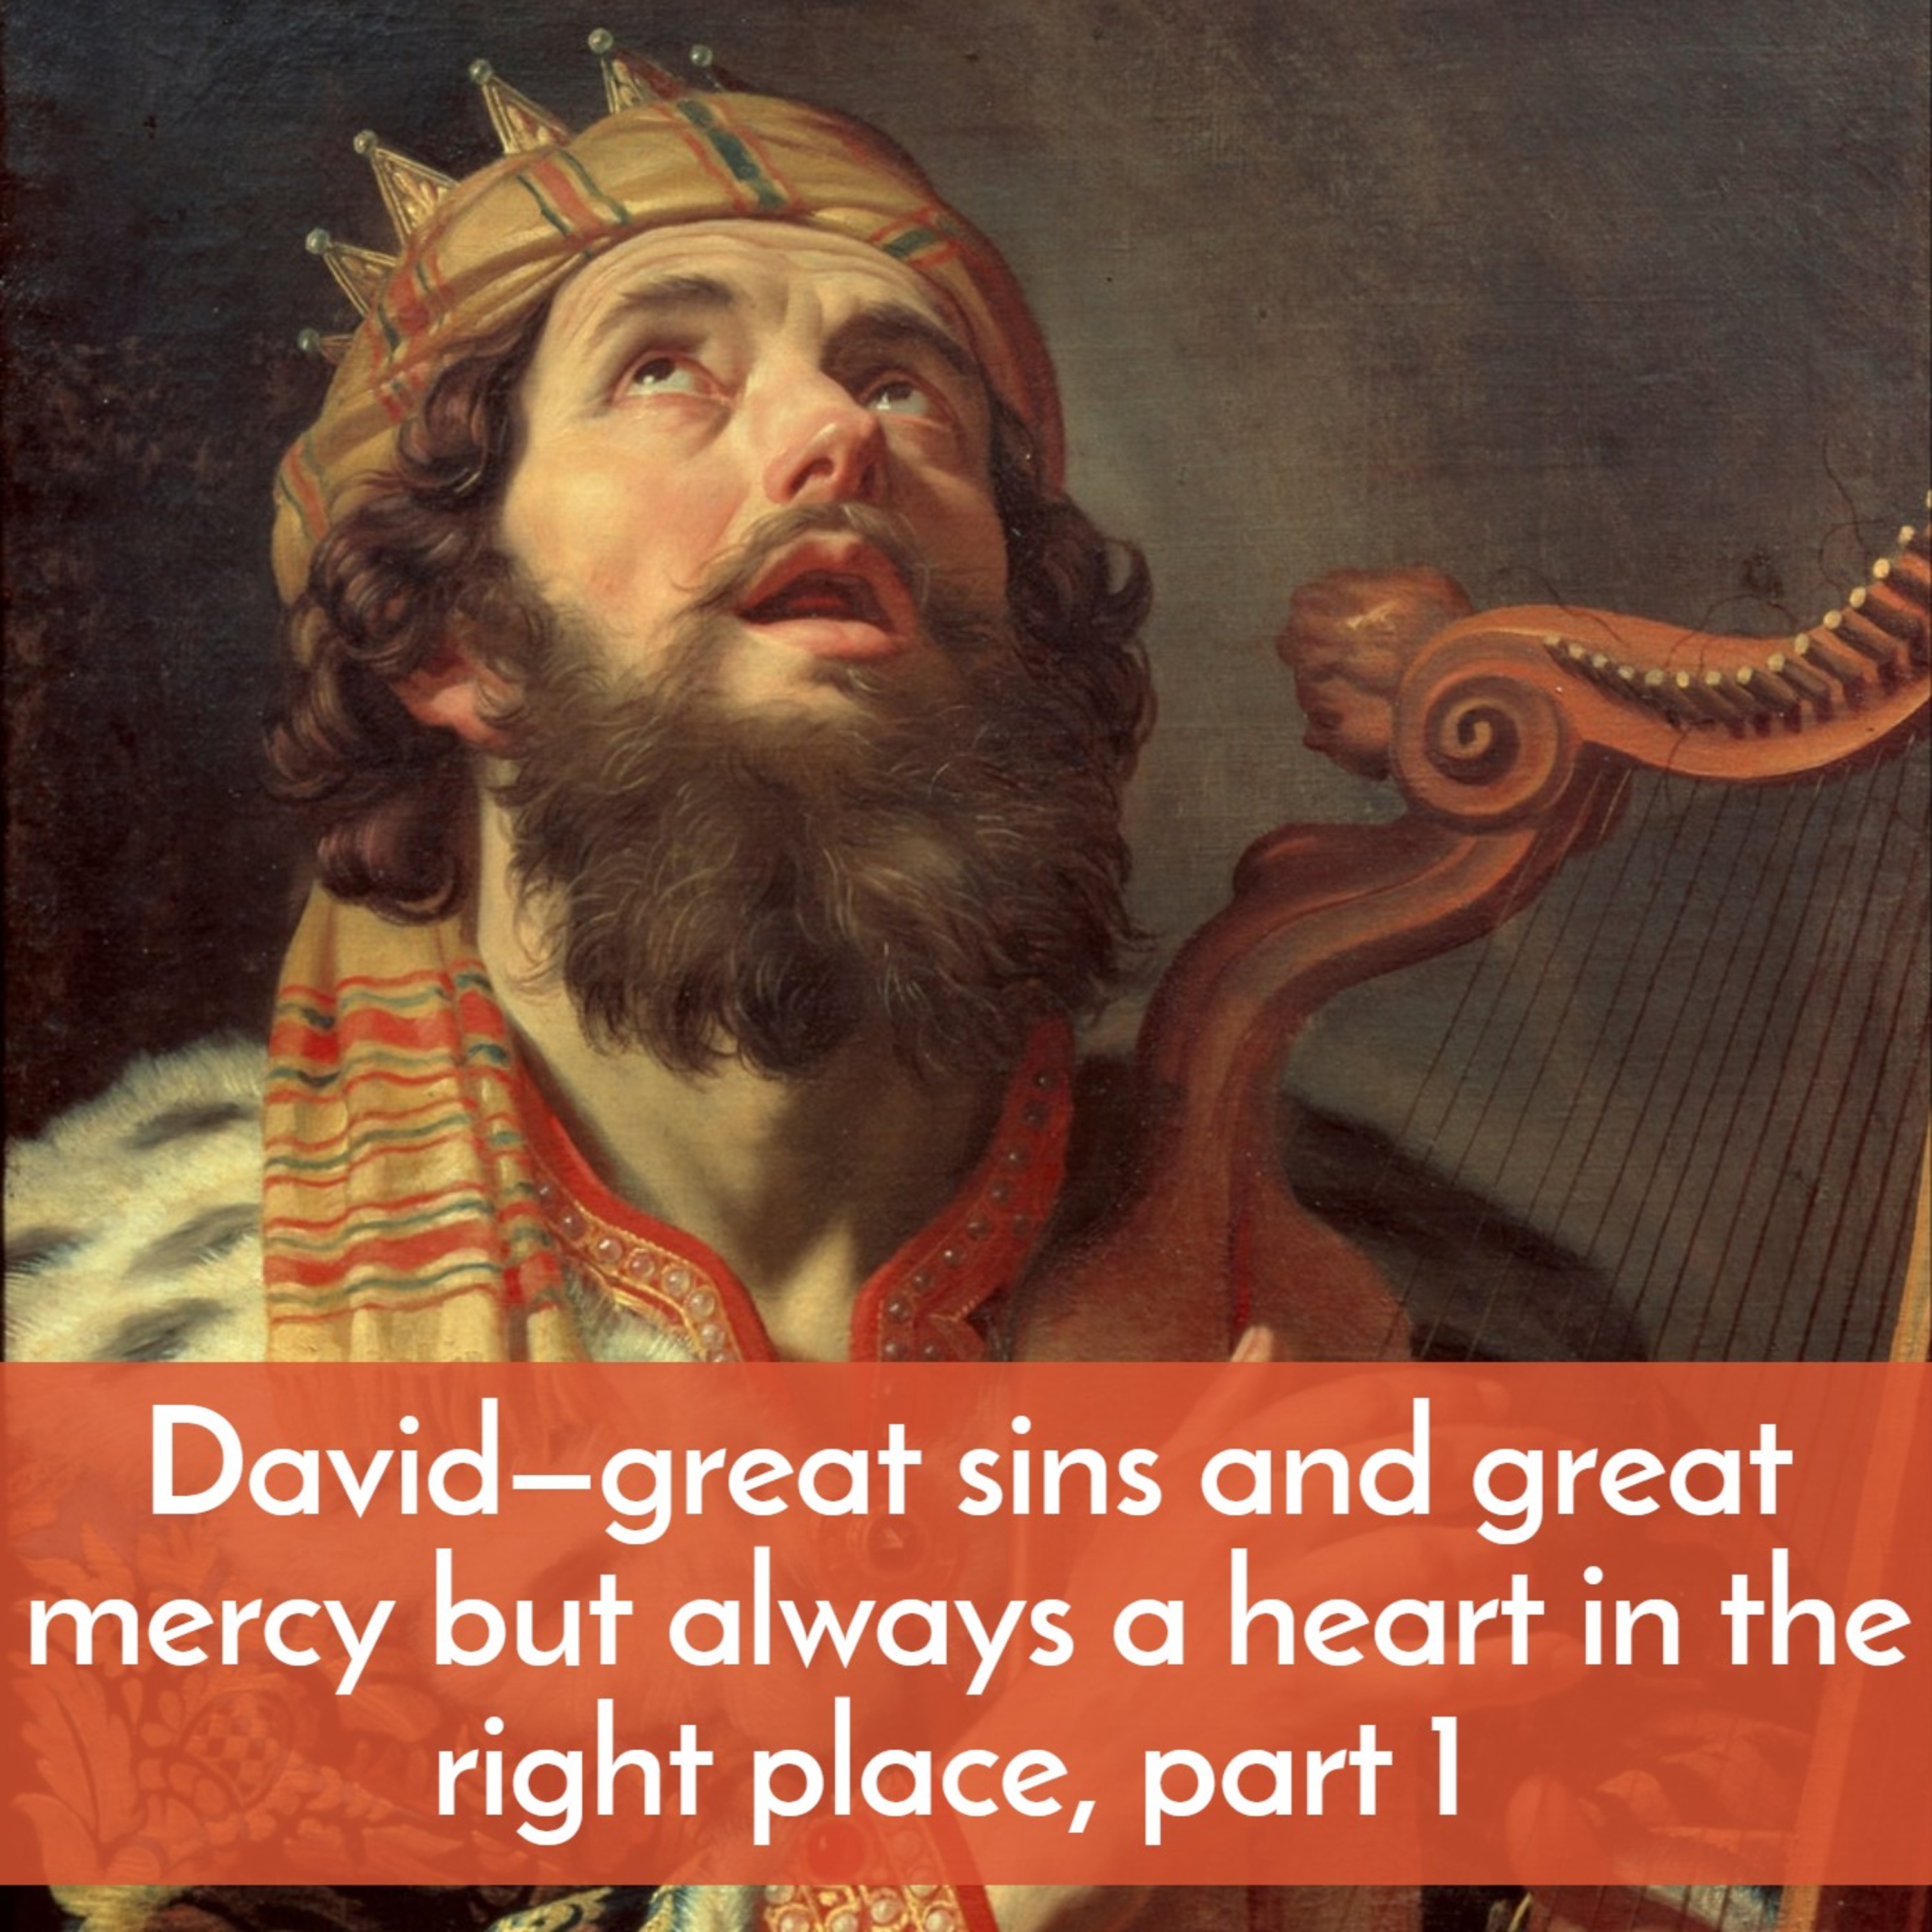 David—great sins and great mercy but always a heart in the right place, part 1